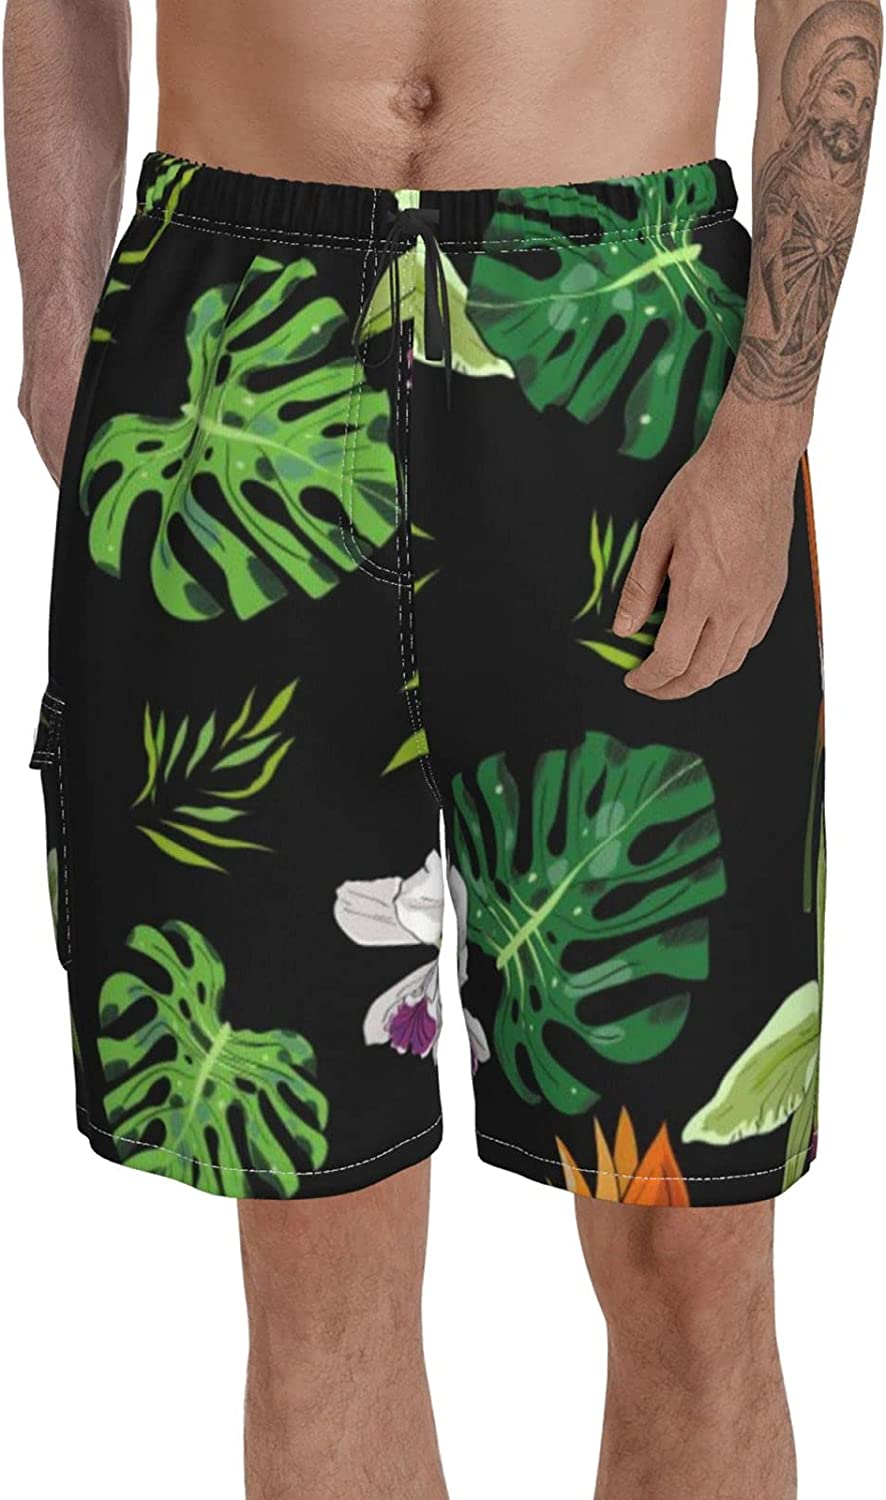 Big and Tall Swim Trunks for Men Print Swimming Short Hand Drawn Watercolor Bathing Suits Mid Length